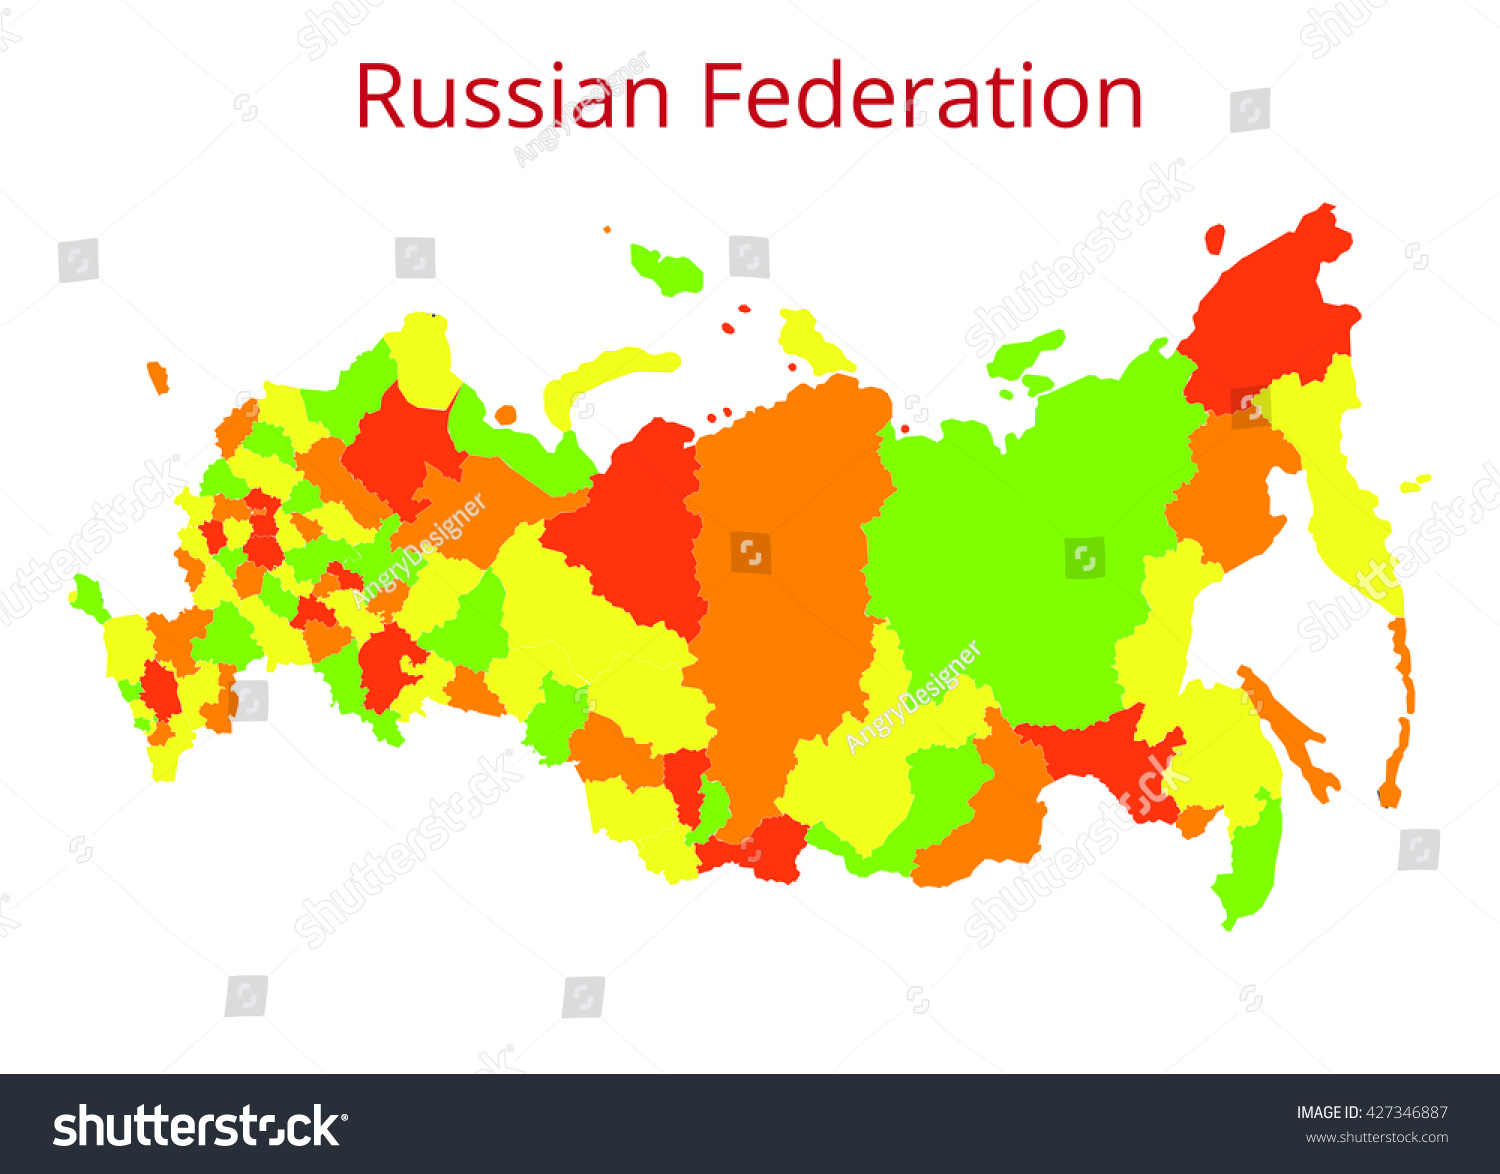 Russian Federation Map Vector Illustration Stock Vector 427346887